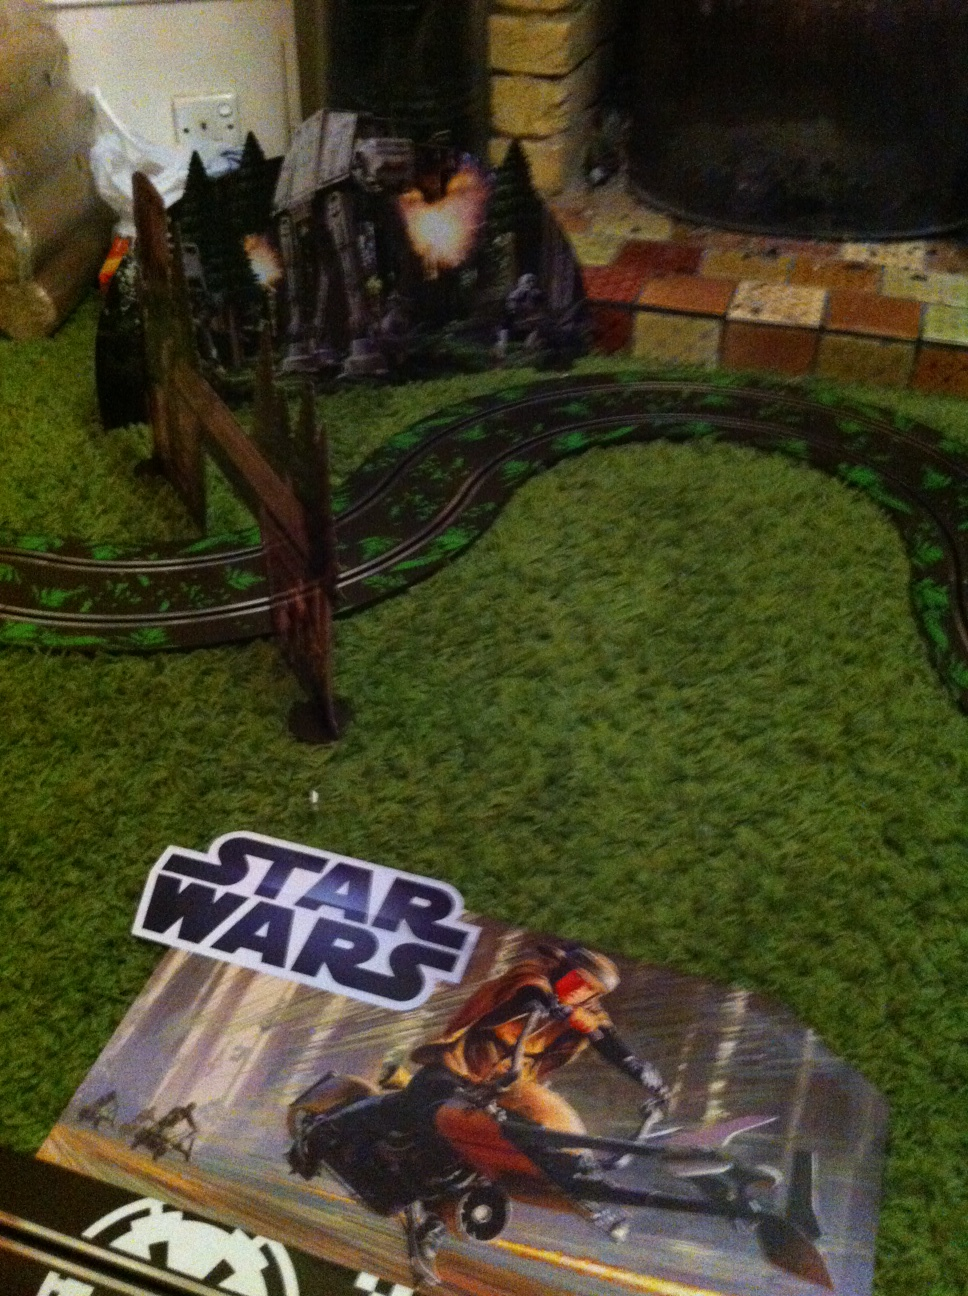 Star Wars Endor Scalextric Set